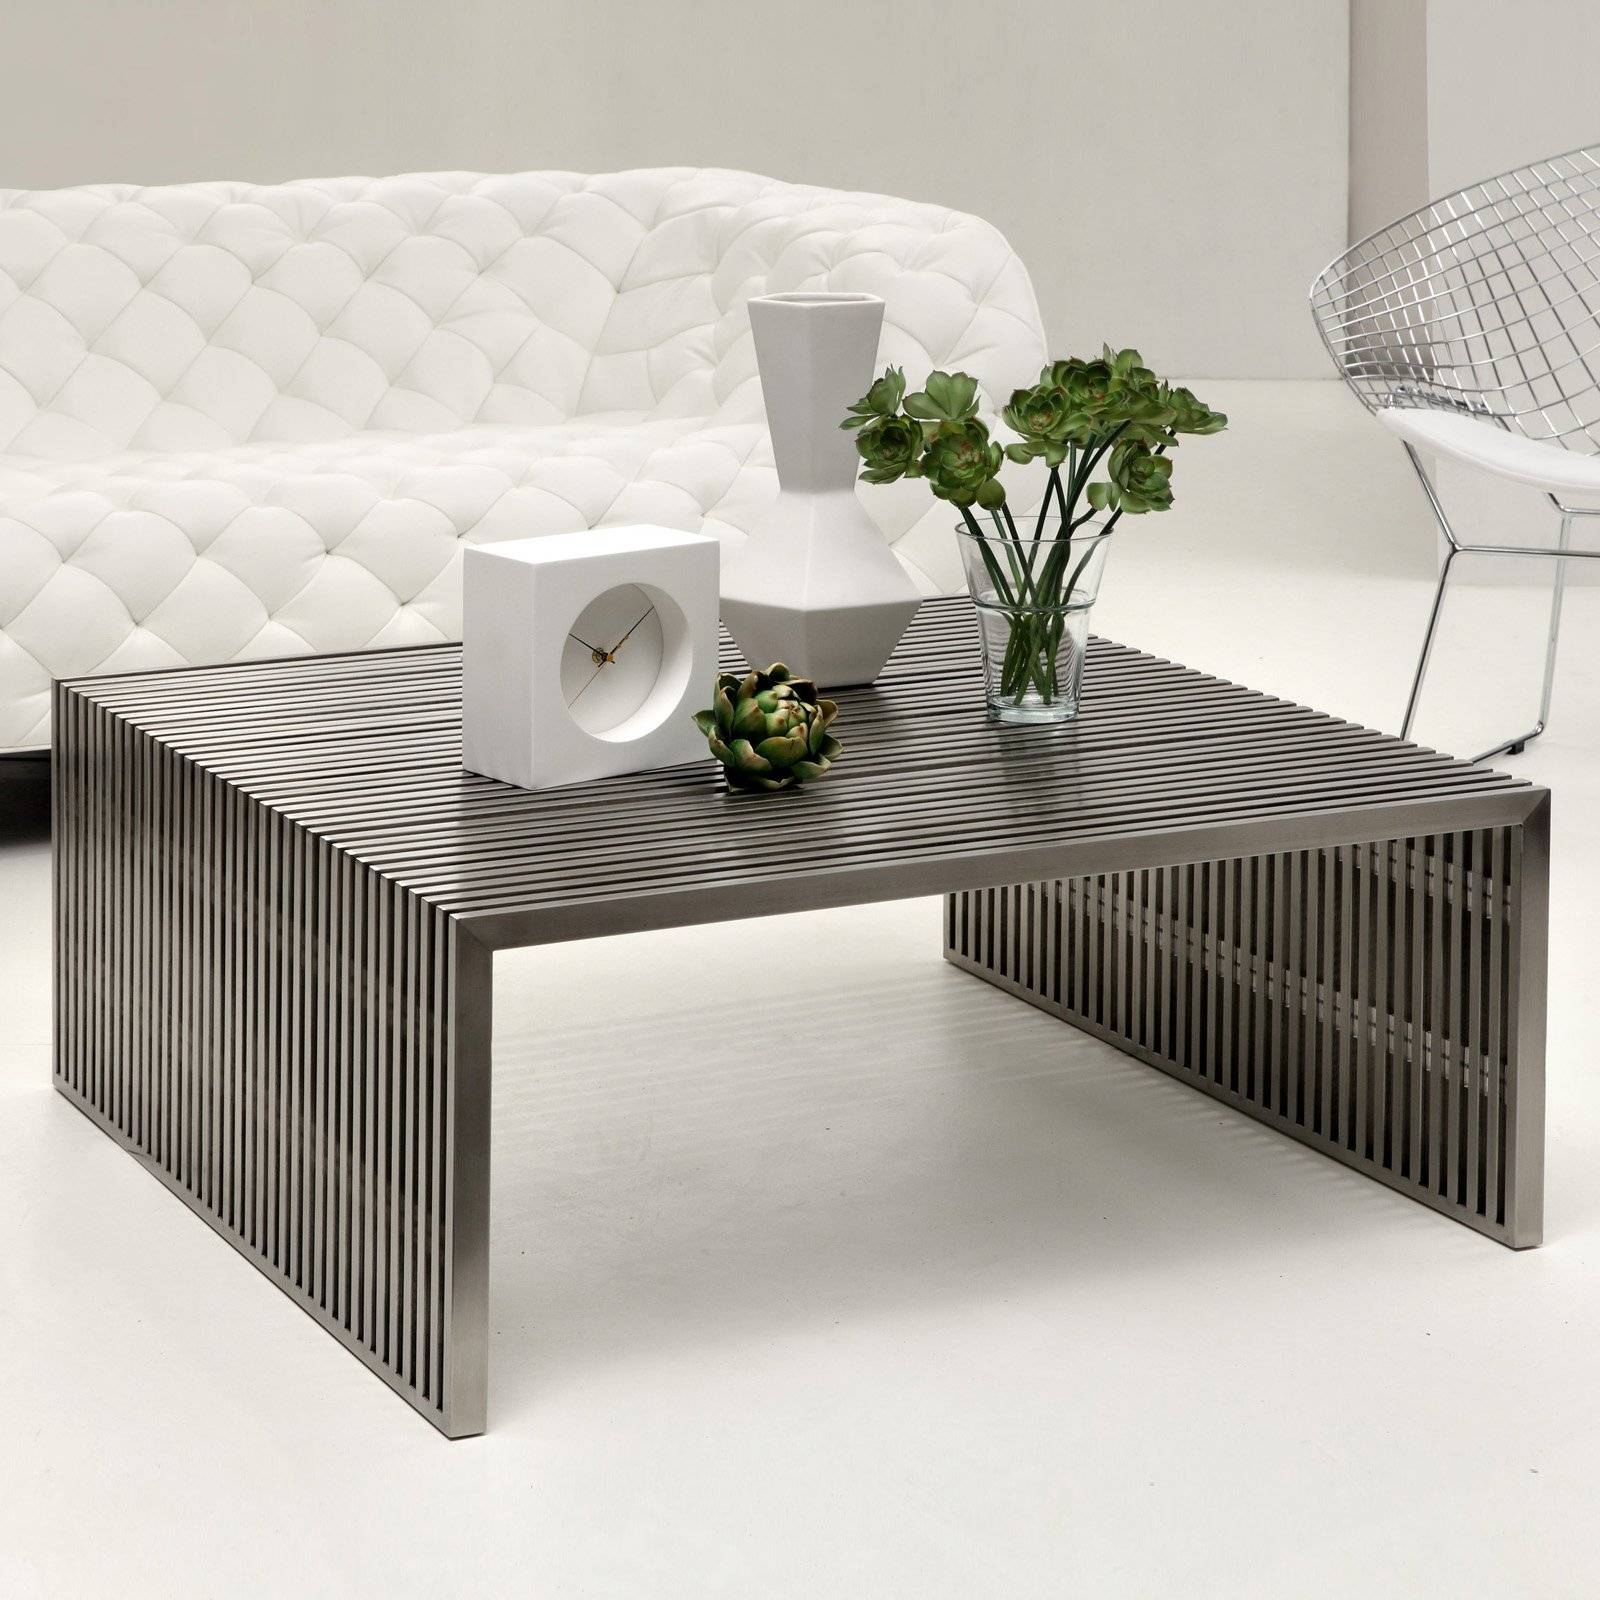 Zuo Modern Square Coffee Table - Coffee Tables At Hayneedle regarding Square Coffee Tables (Image 30 of 30)